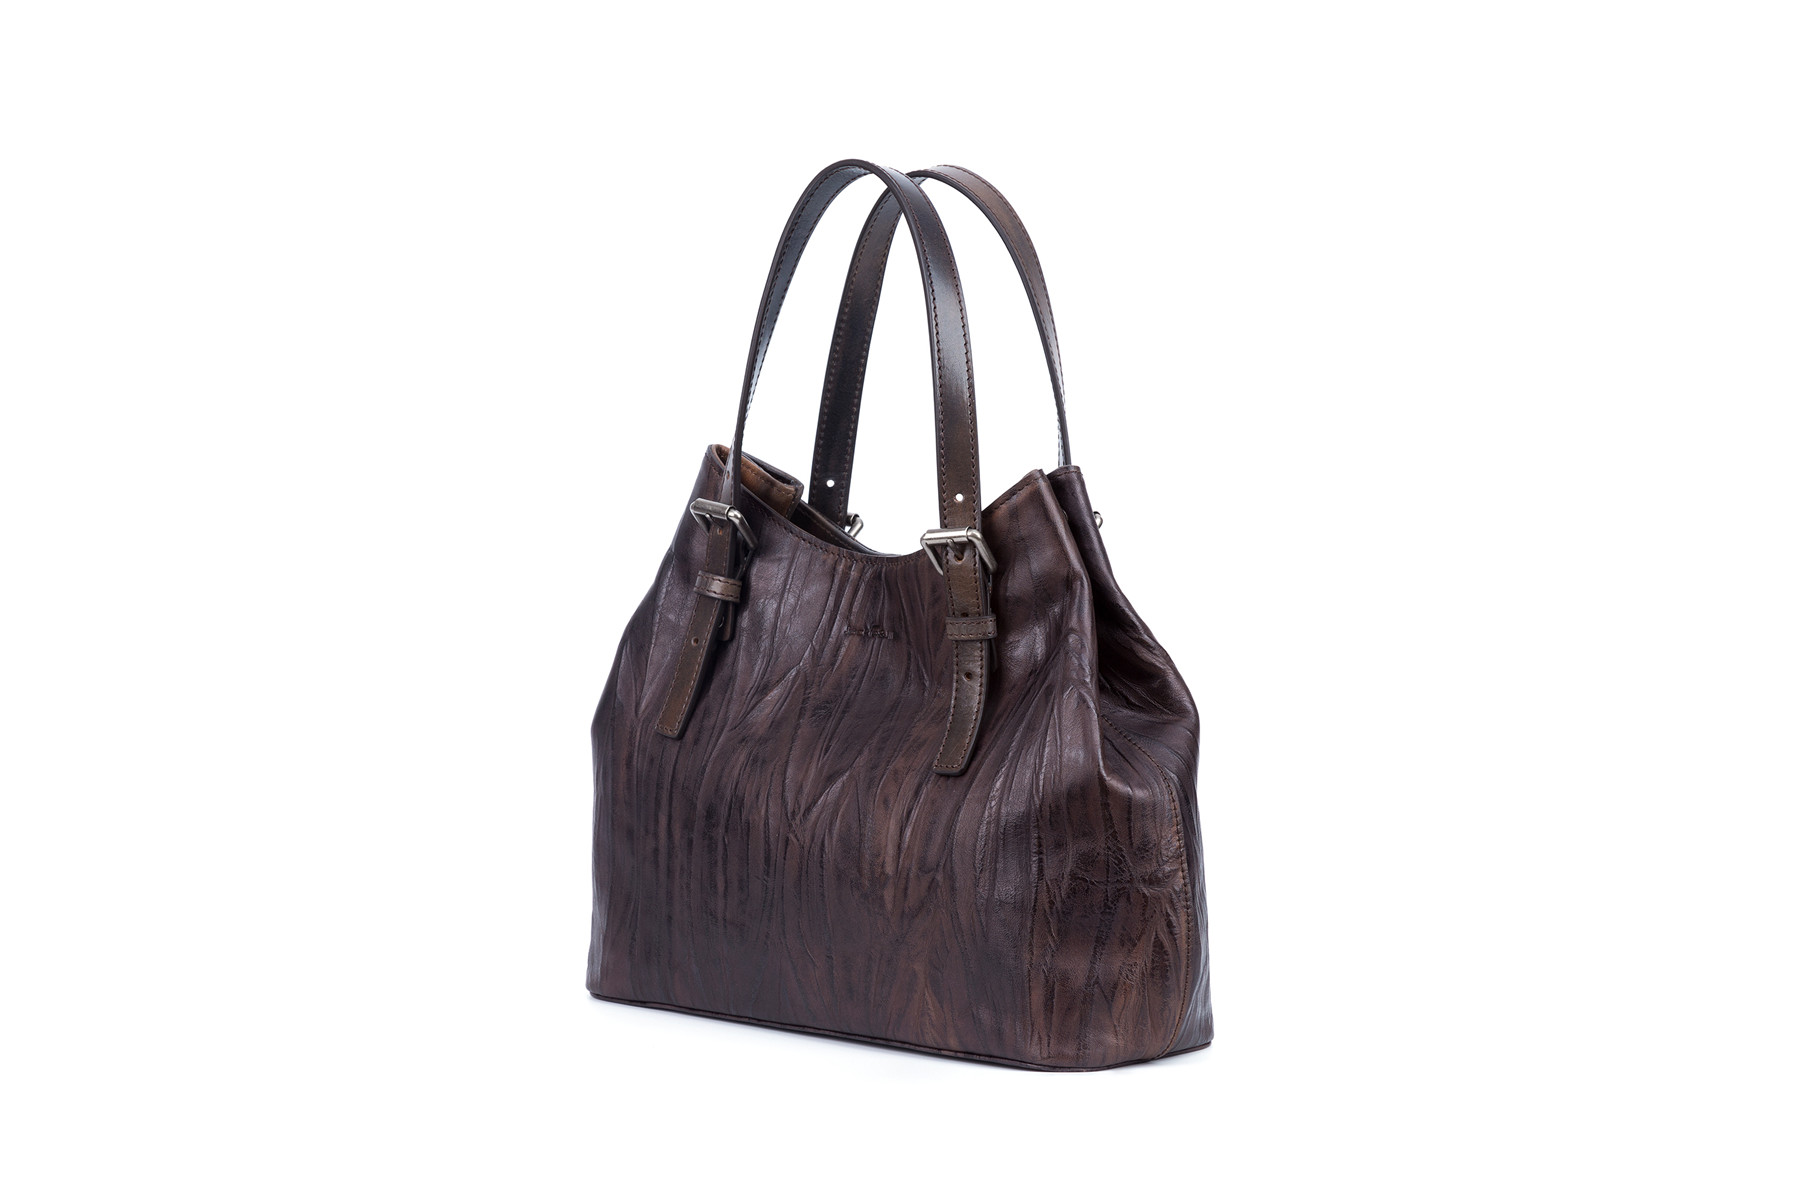 GF bags-Oem Best Handbags Manufacturer, Cream Handbags-5